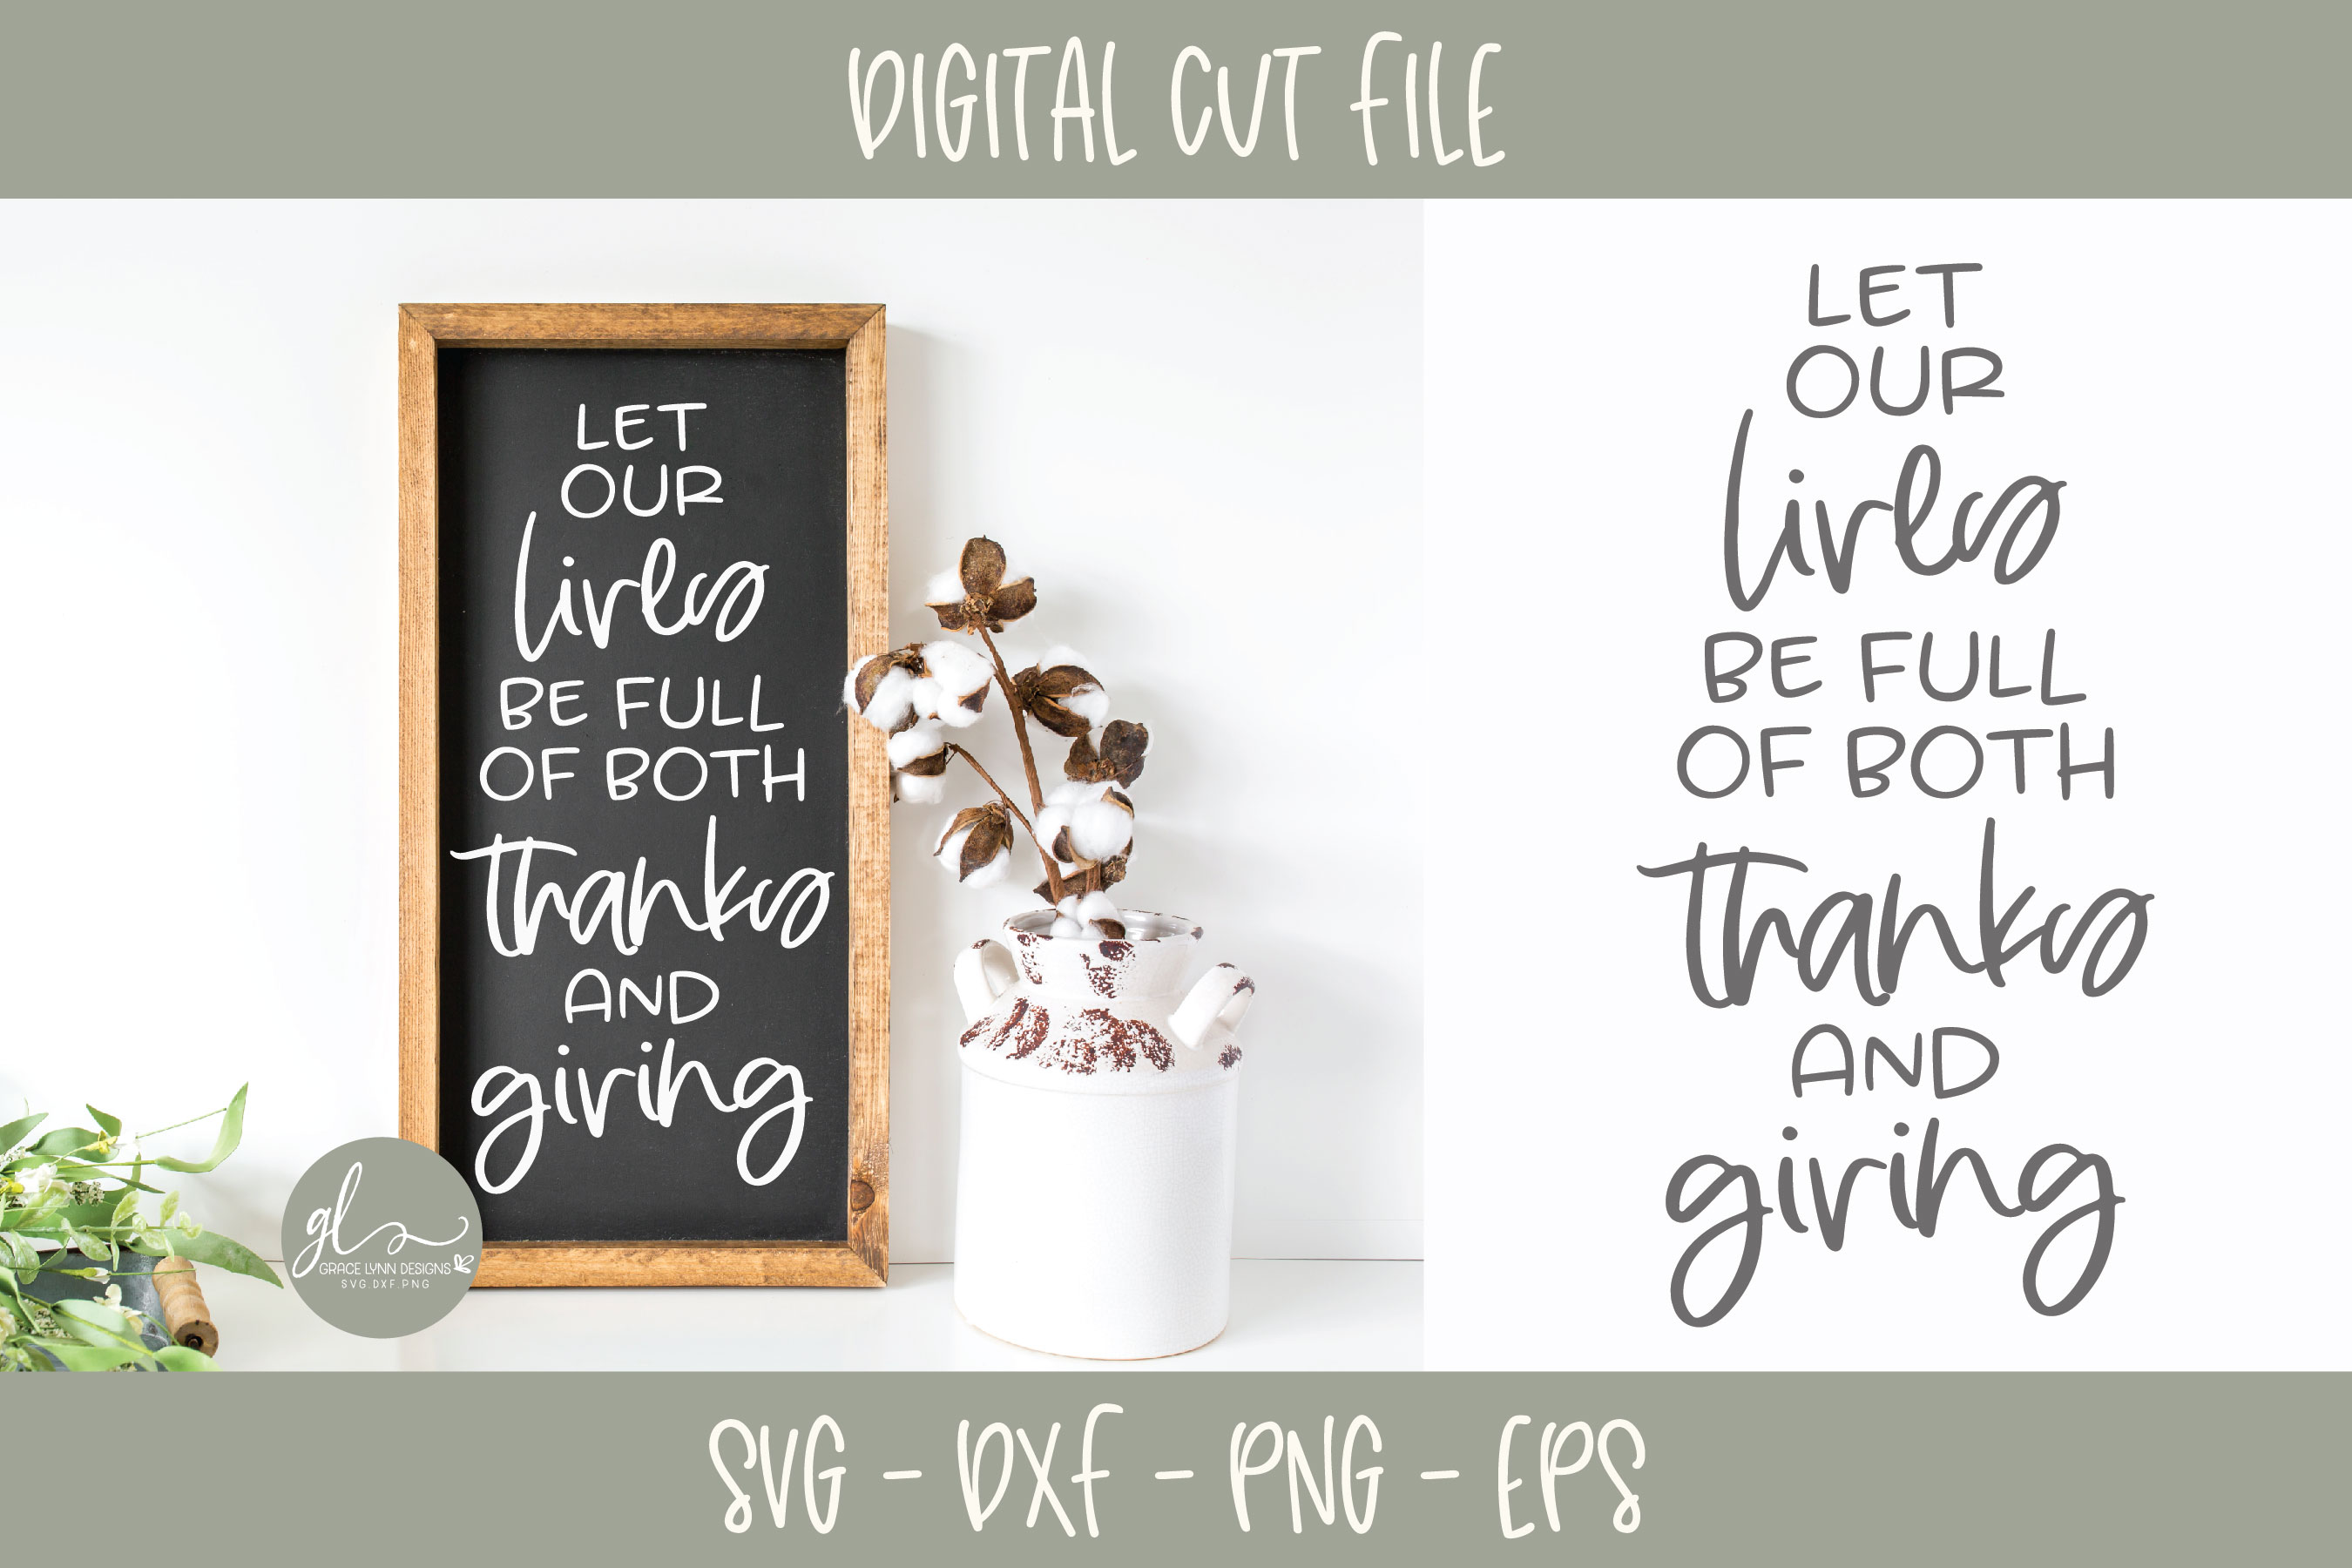 Let Our Lives Be Full Of Both Thanks And Giving Svg